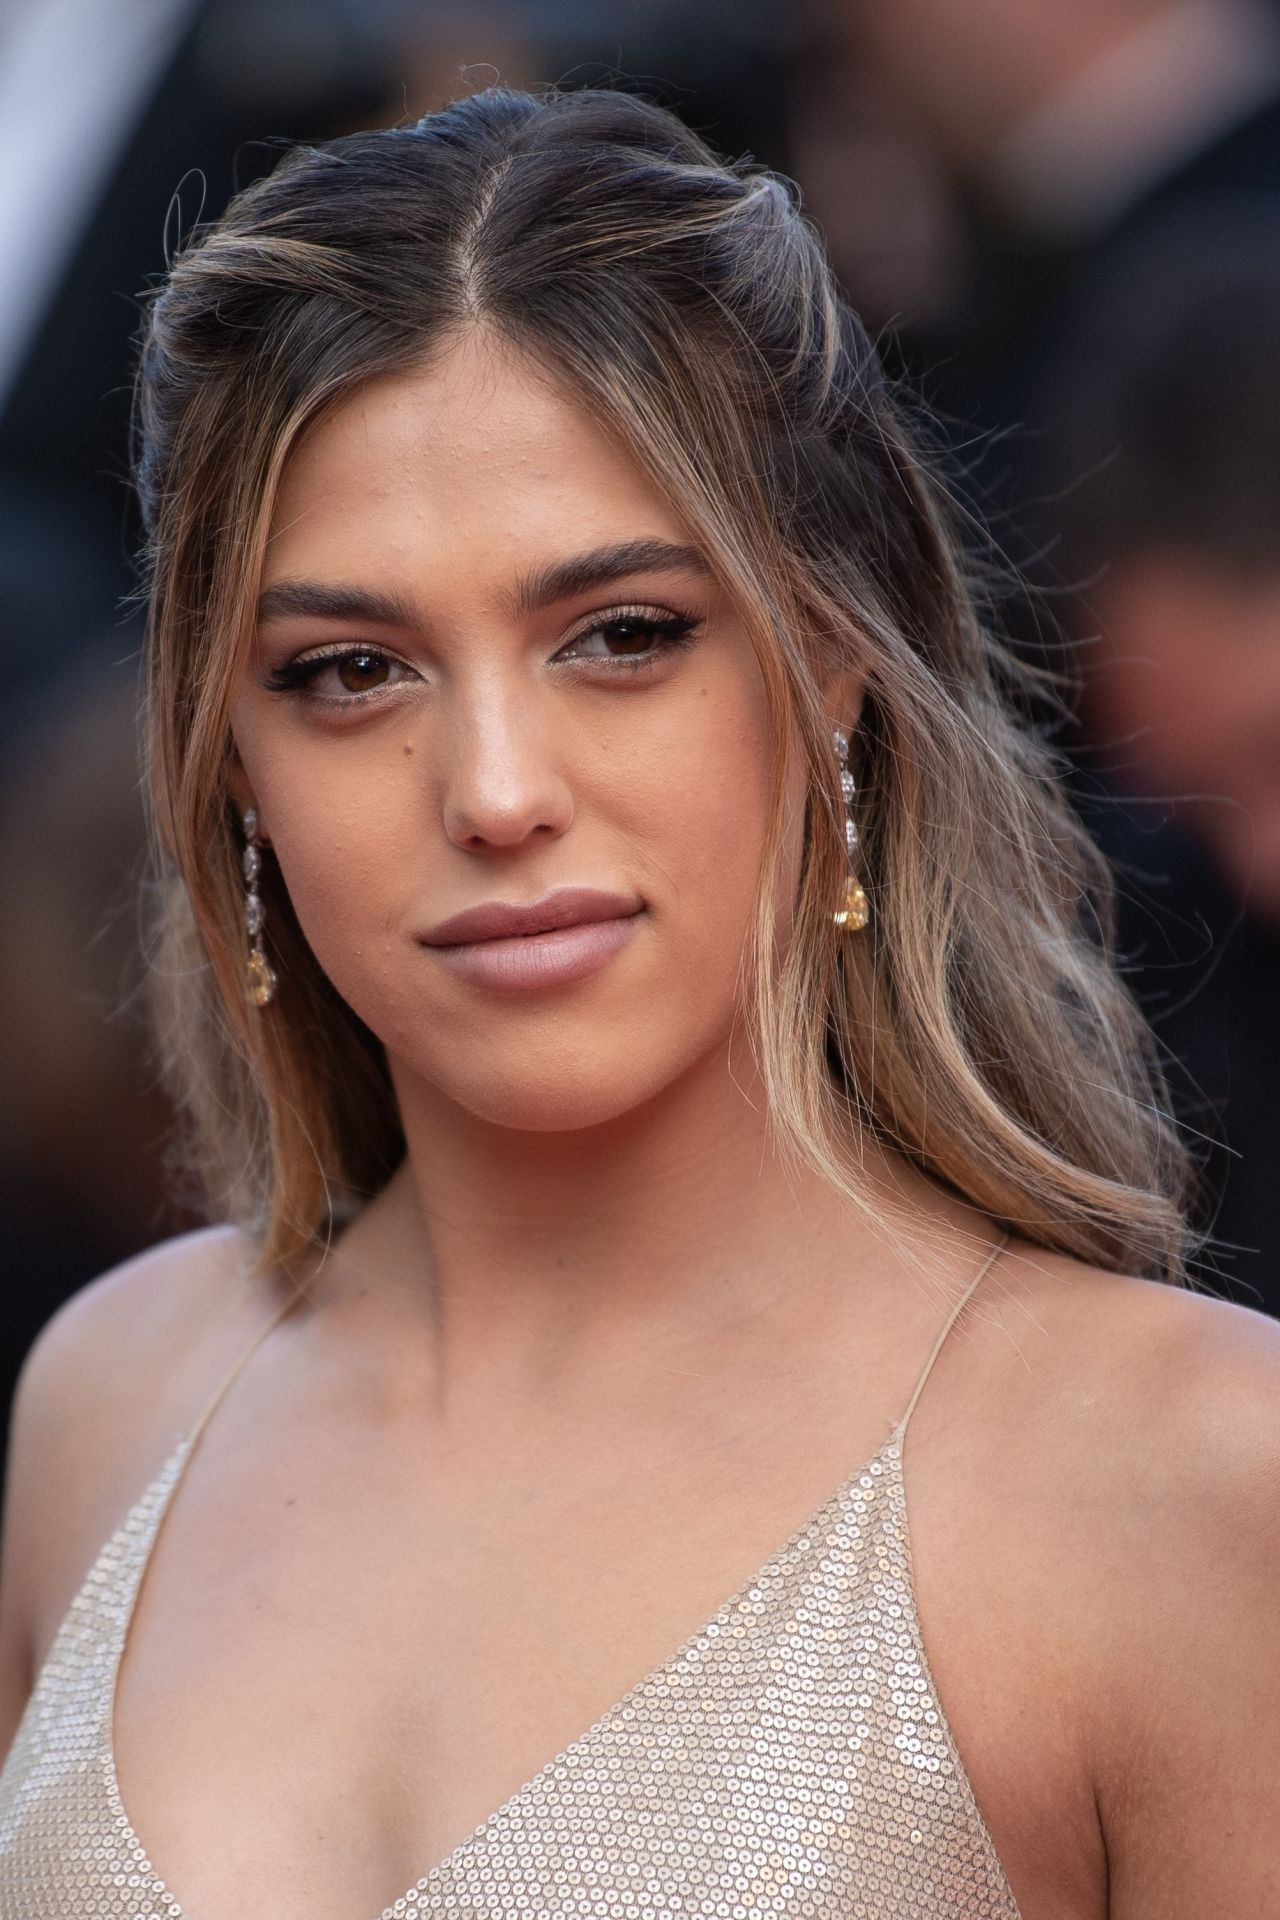 Sistine Rose Stallone - 72nd Cannes Film Festival Closing